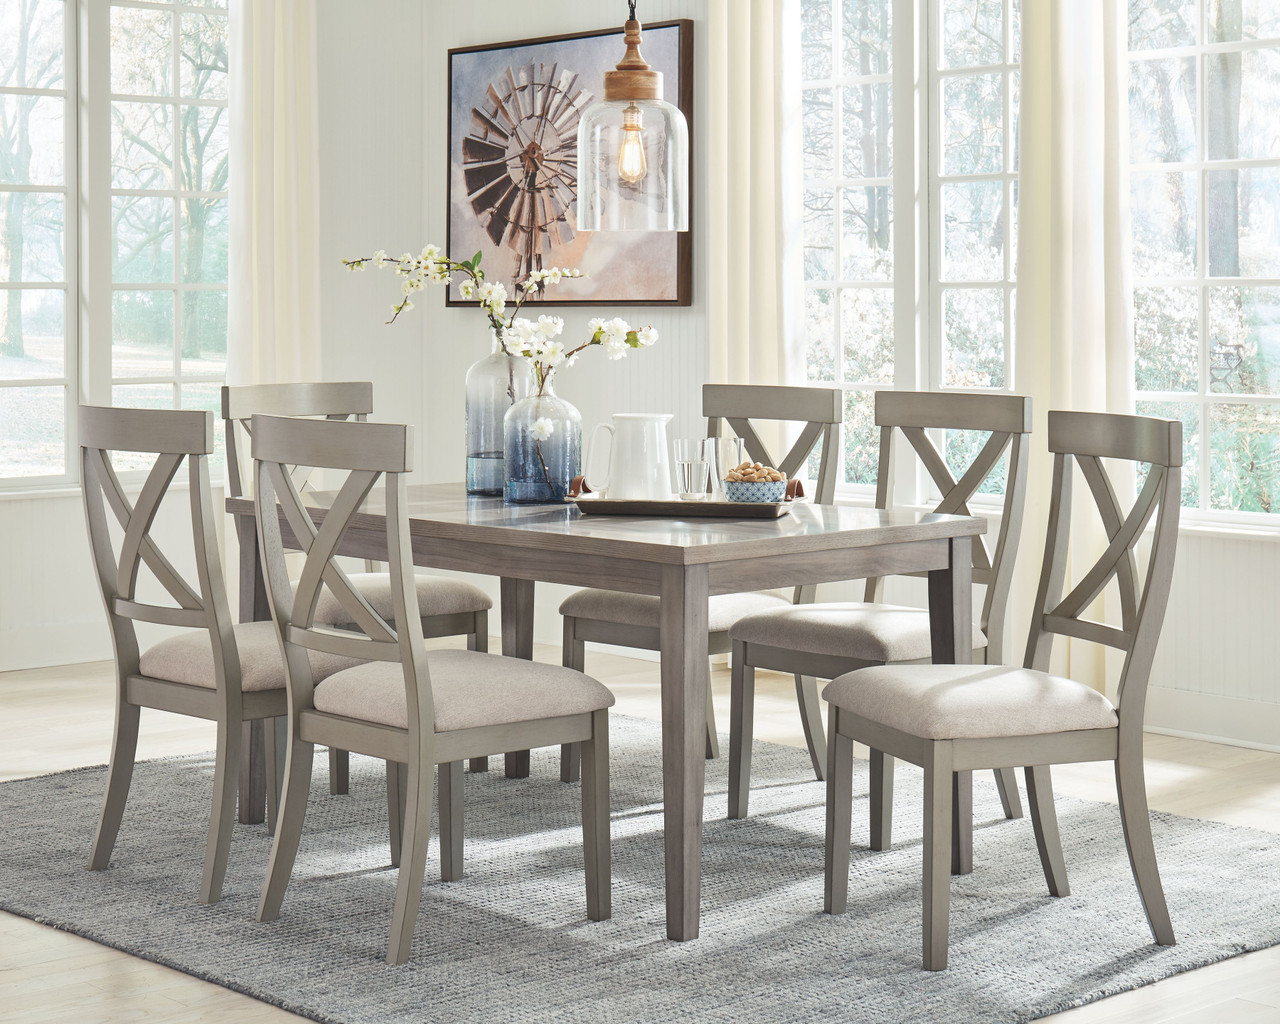 Ashley Parellen Gray 7 Pc Rectangular Table 6 Upholstered Side Chairs On Sale At Red Shed Furniture Serving Goldsboro Wilson Greenville Nc